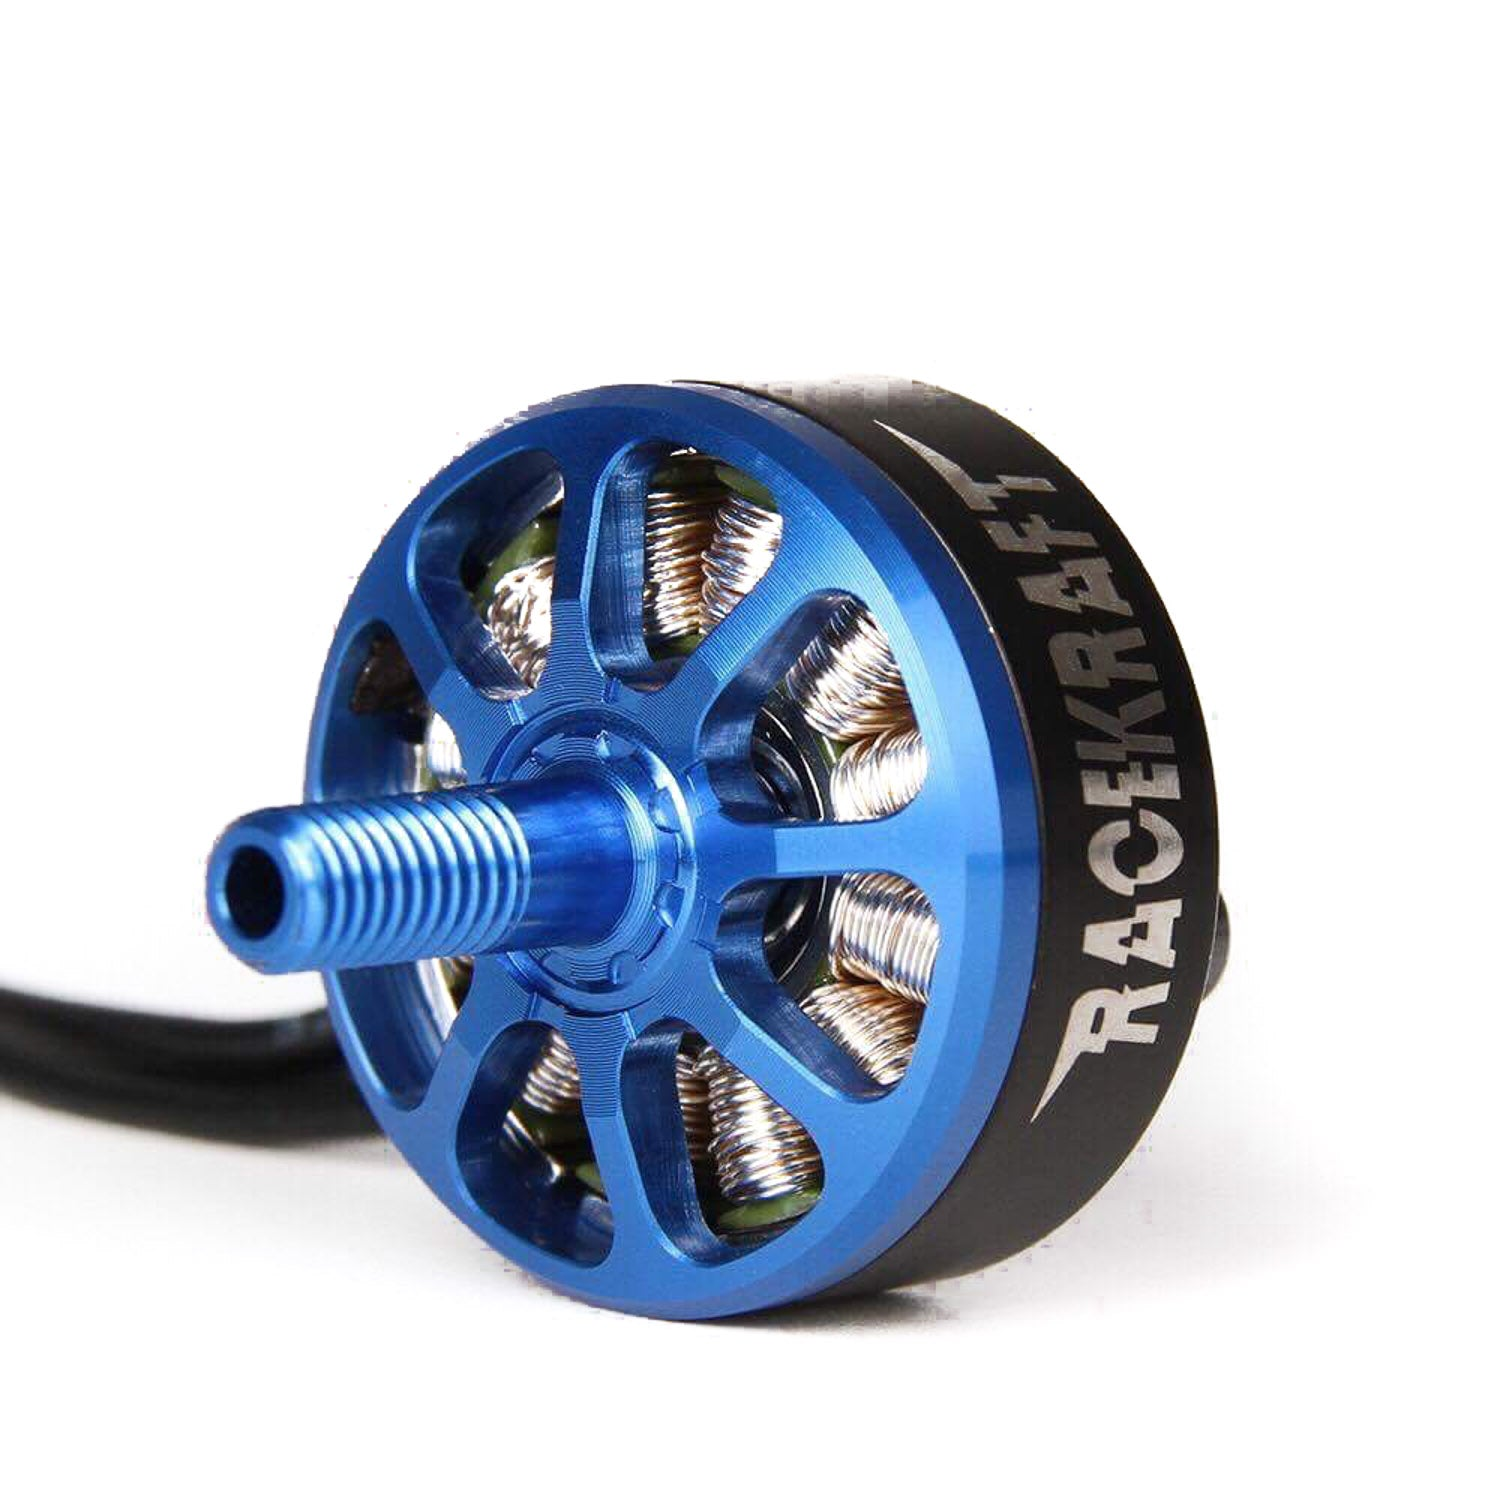 RaceKraft 2307/2000KV Premium Brushless Motor